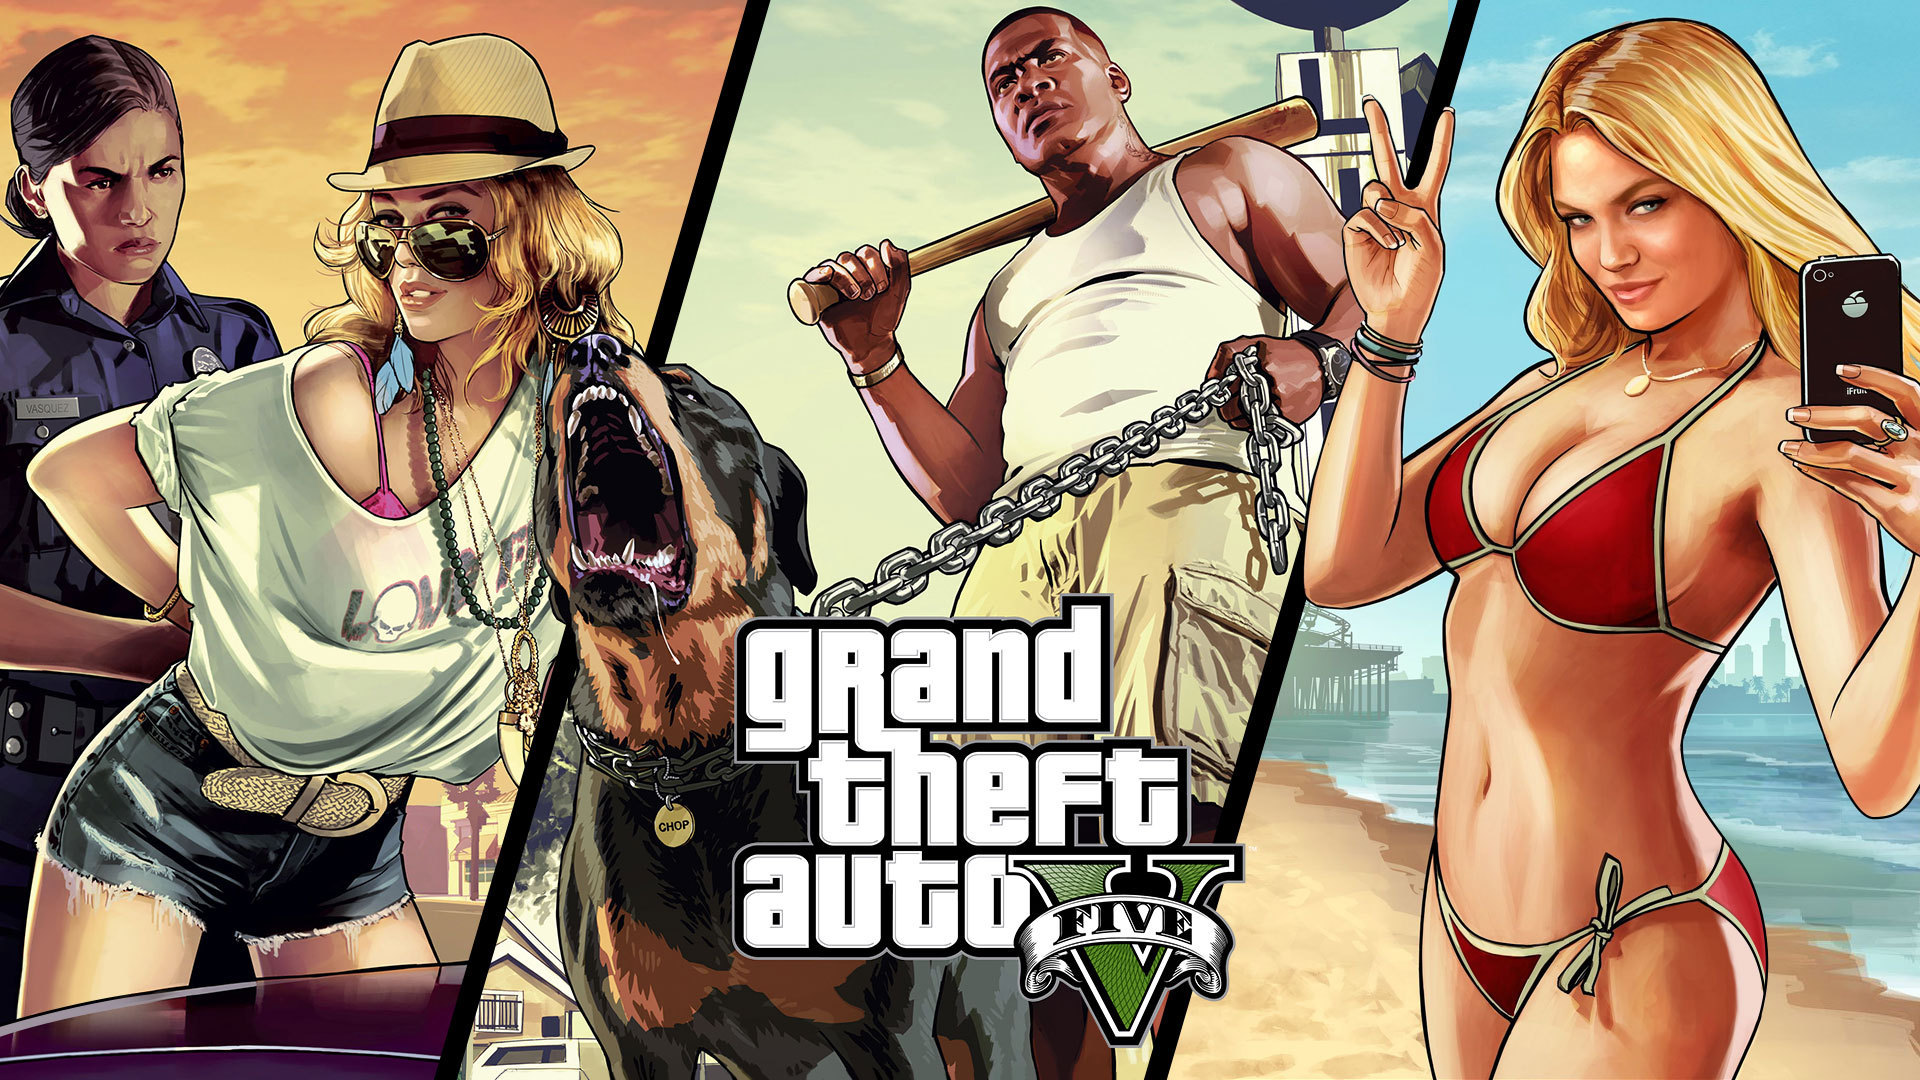 HQ Grand Theft Auto Wallpapers | File 564.46Kb